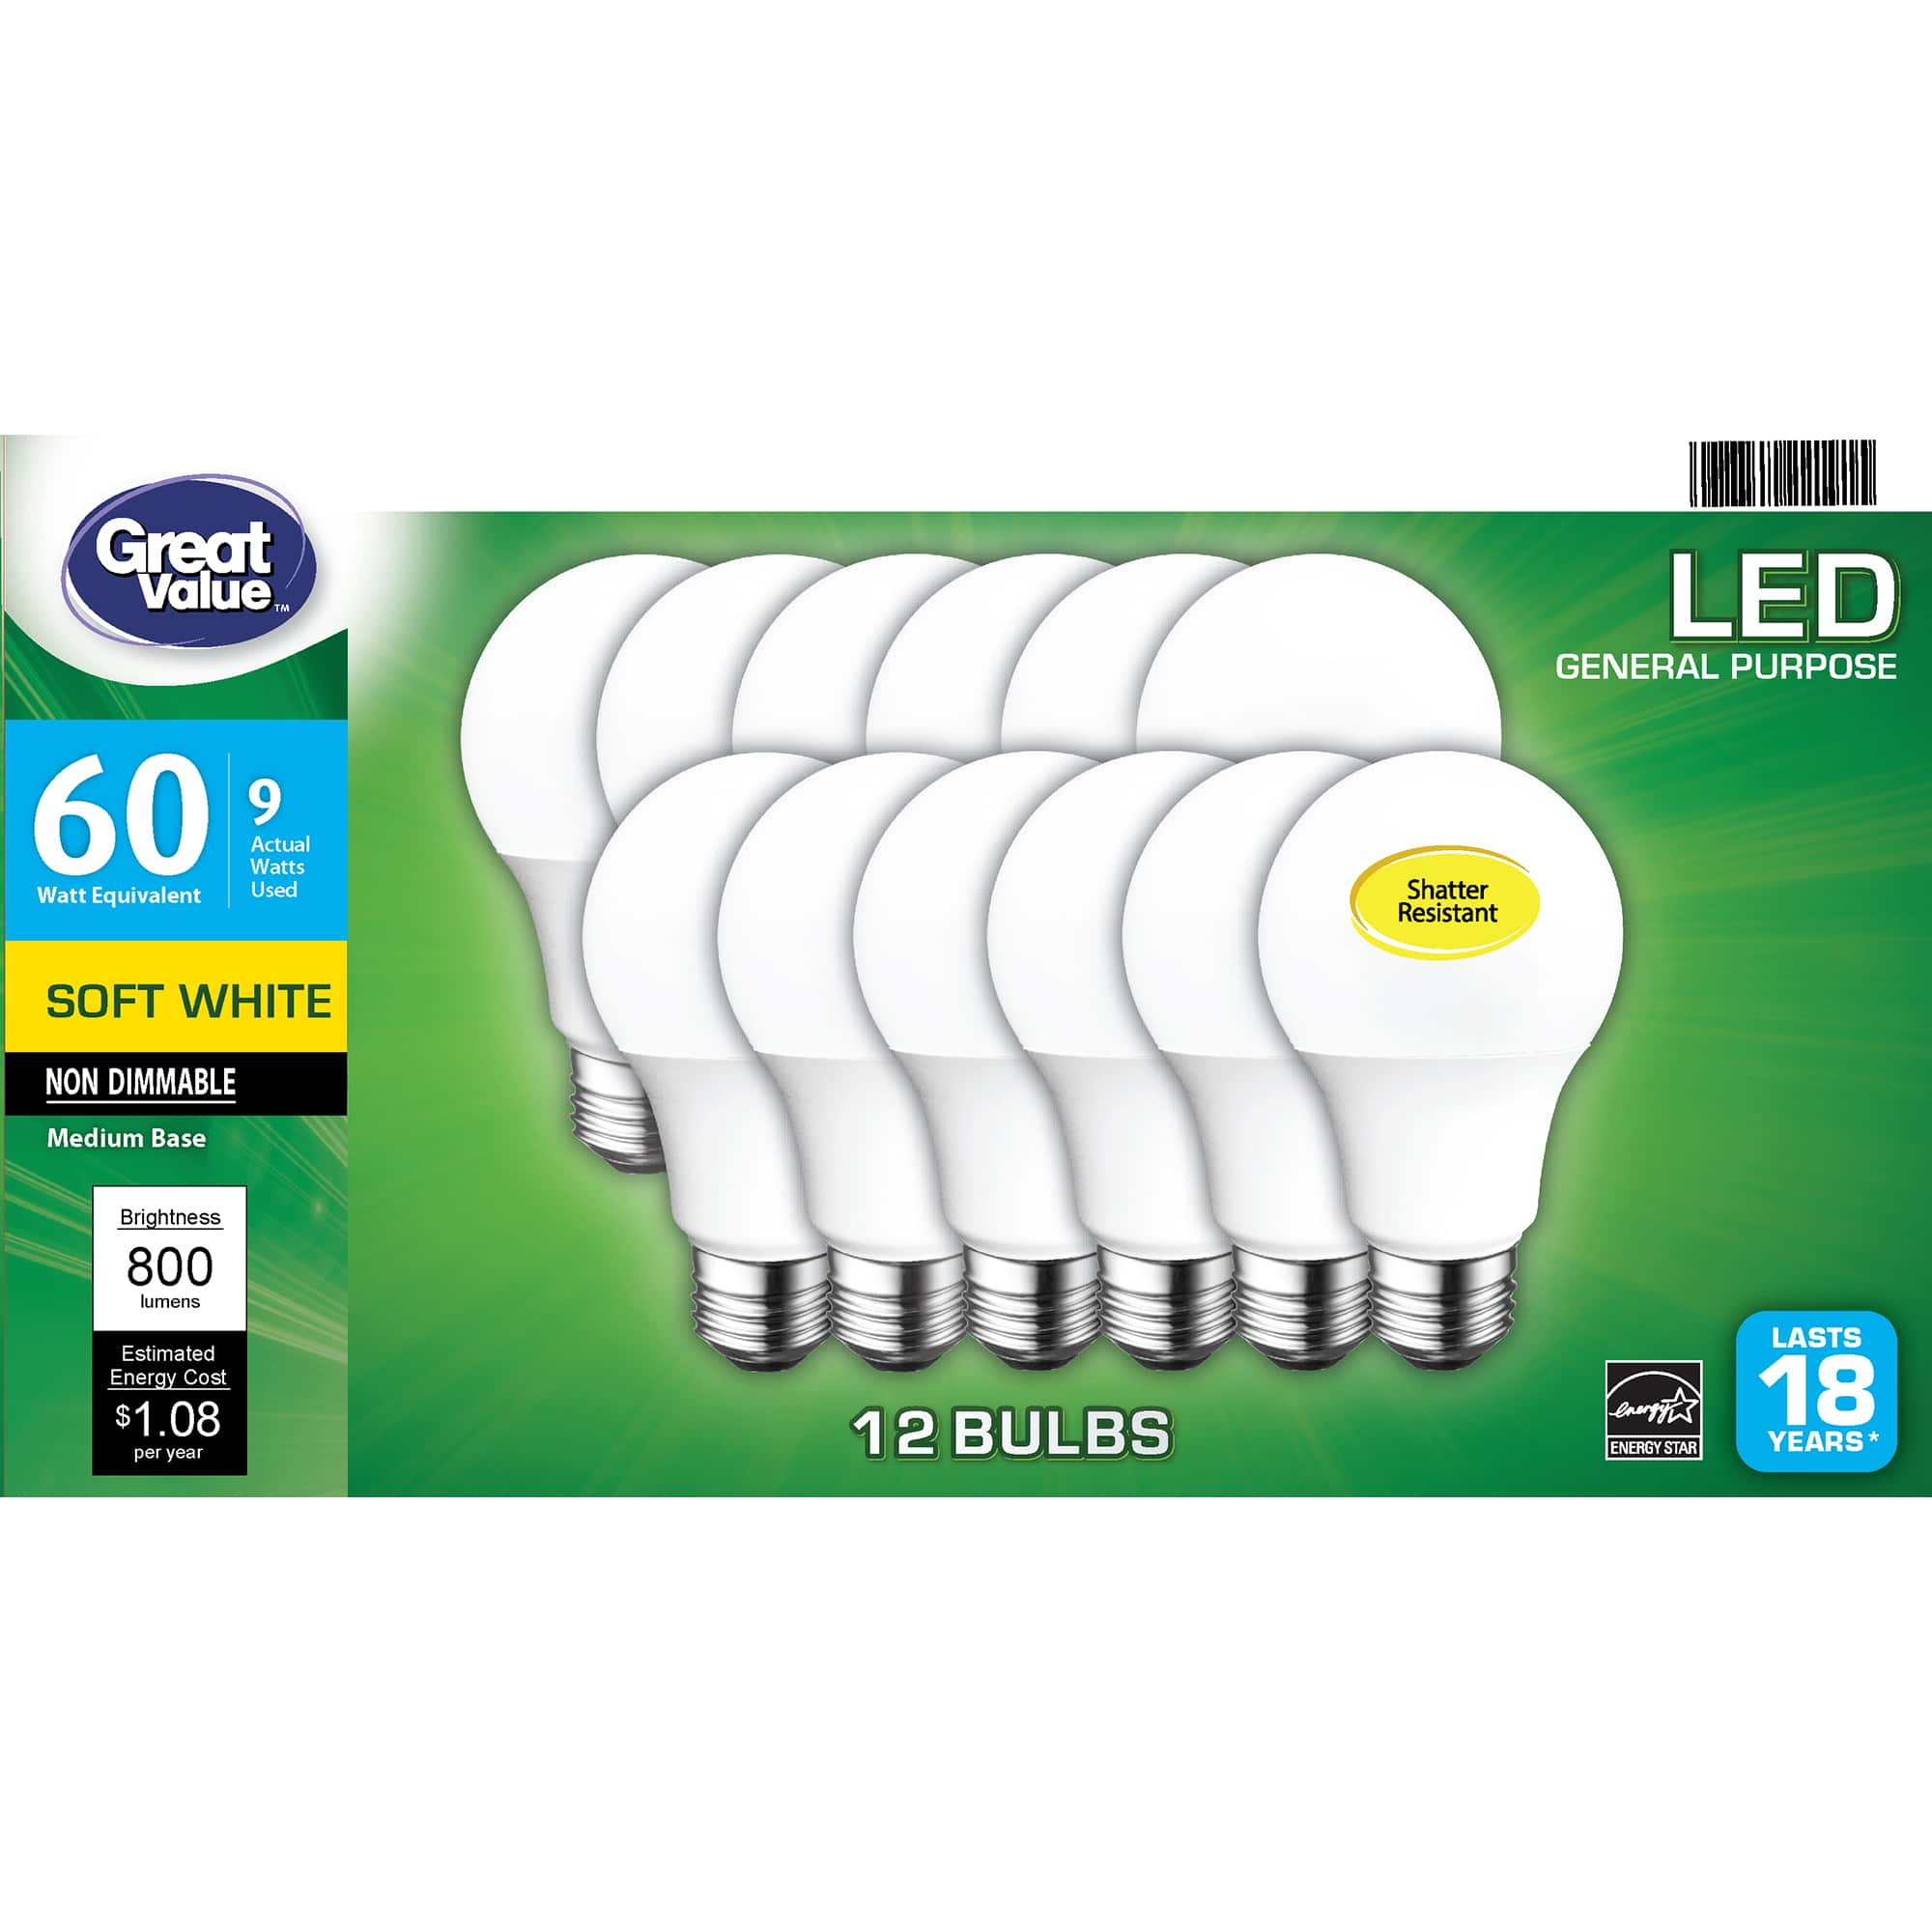 Great Value LED Light Bulb, 9 Watts (60W Equivalent) A19 General Purpose Lamp E26 Medium Base, Non-dimmable, Soft White, 12-Pack $1.97 YMMV